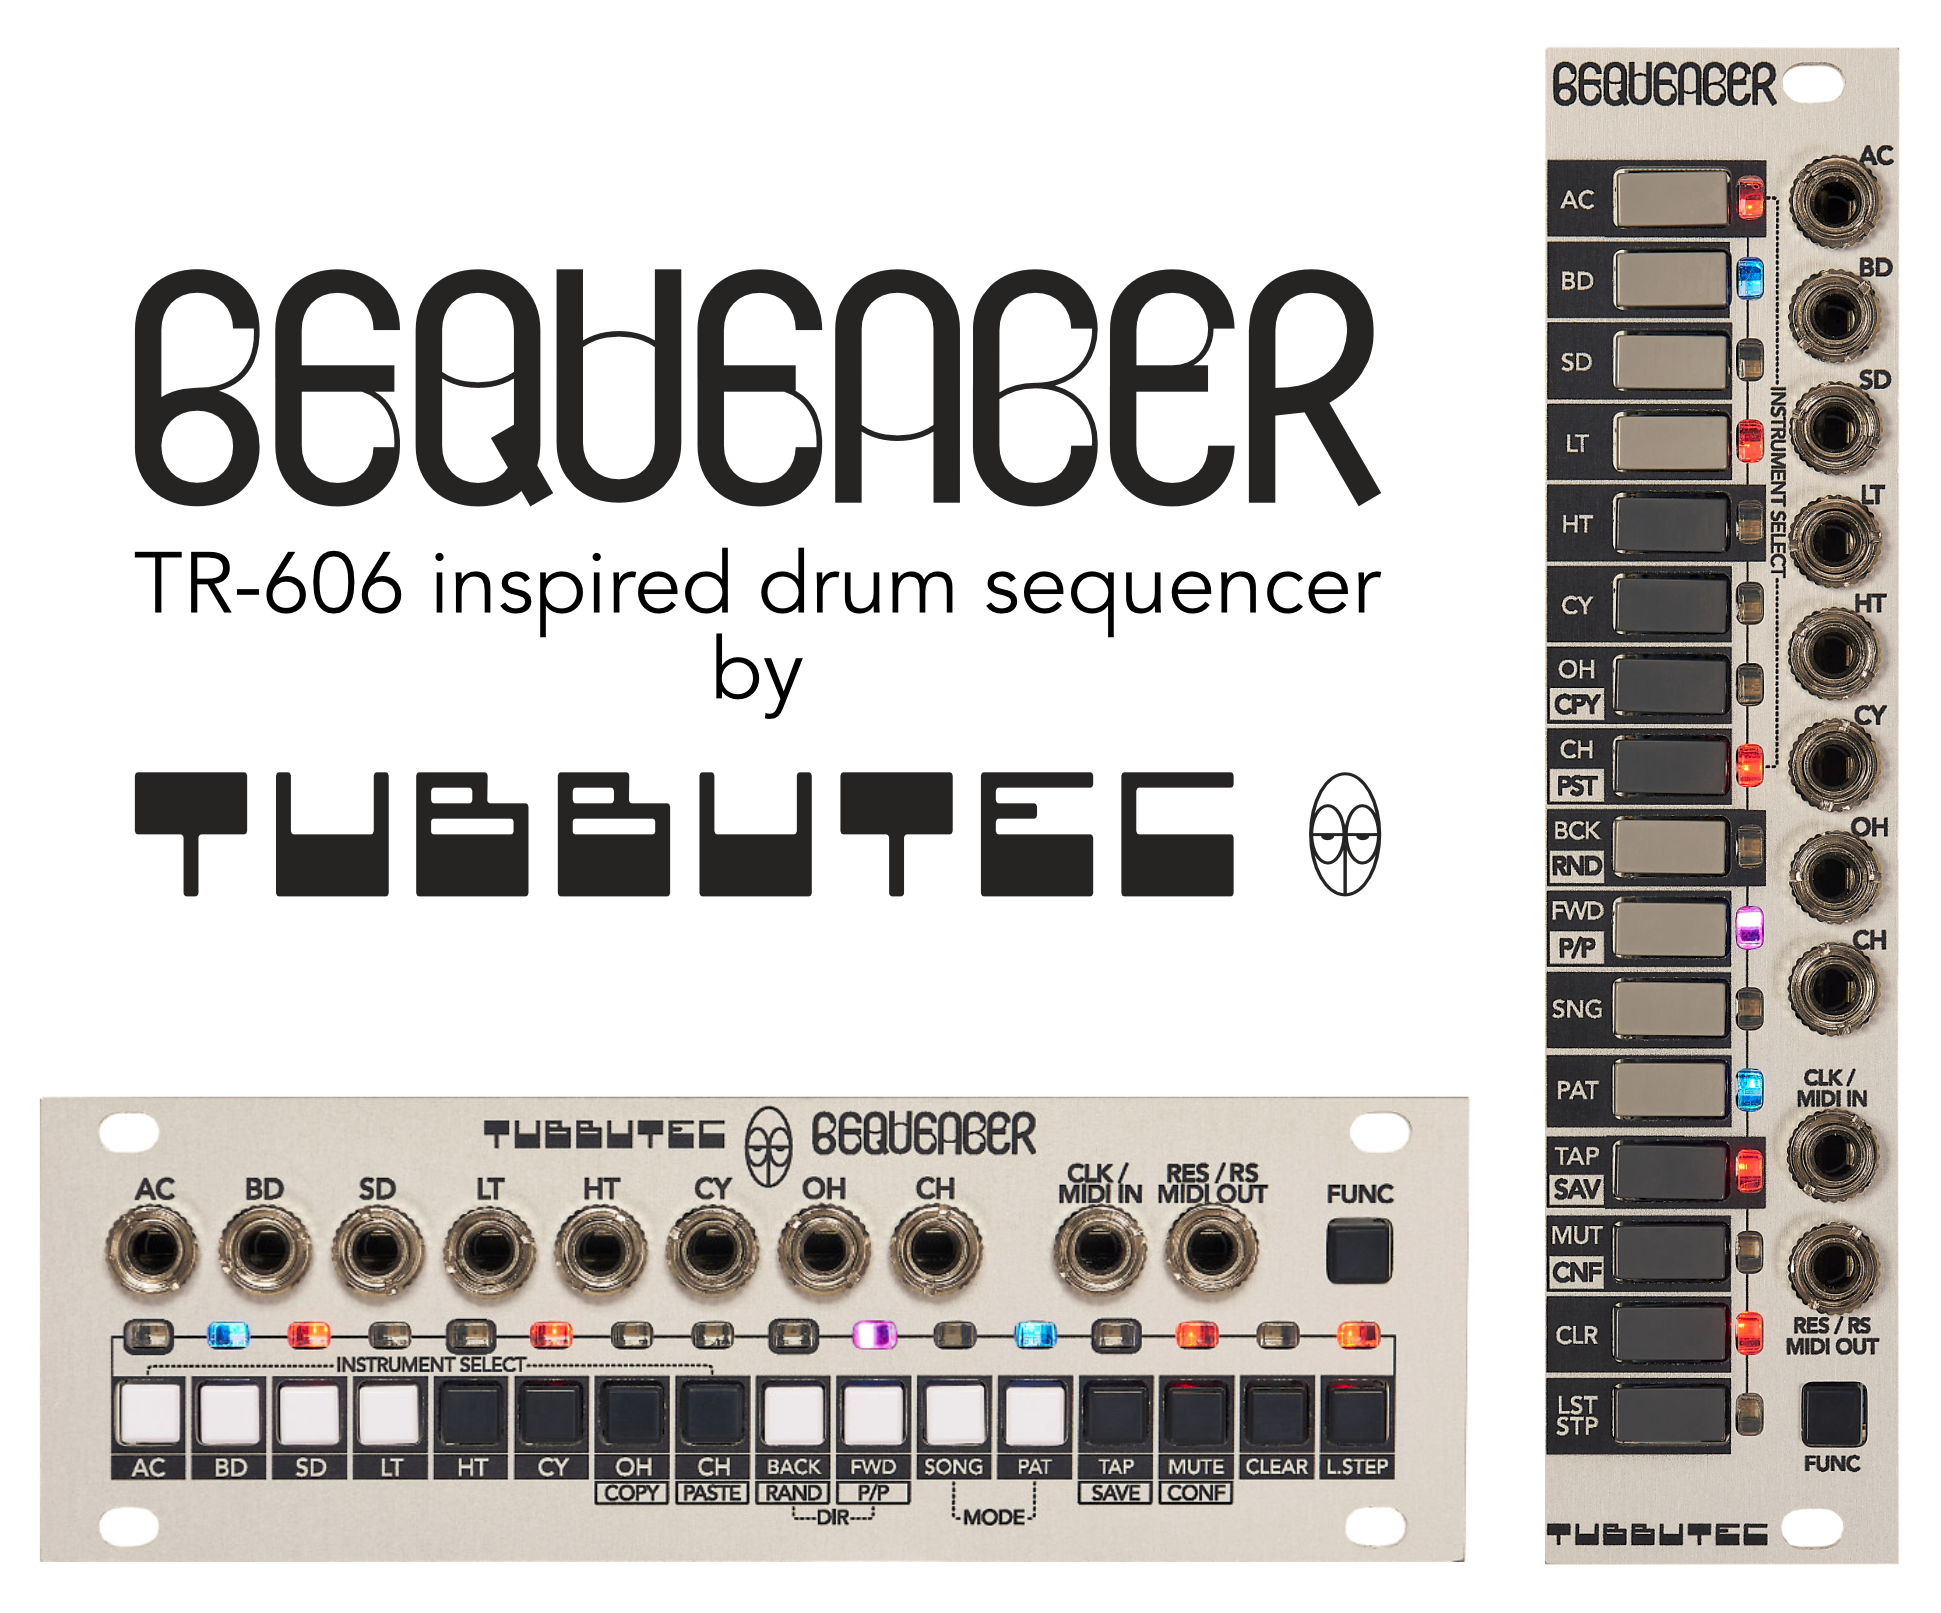 6equencer - a TR-606 inspired sequencer in 1U and 3U eurorack